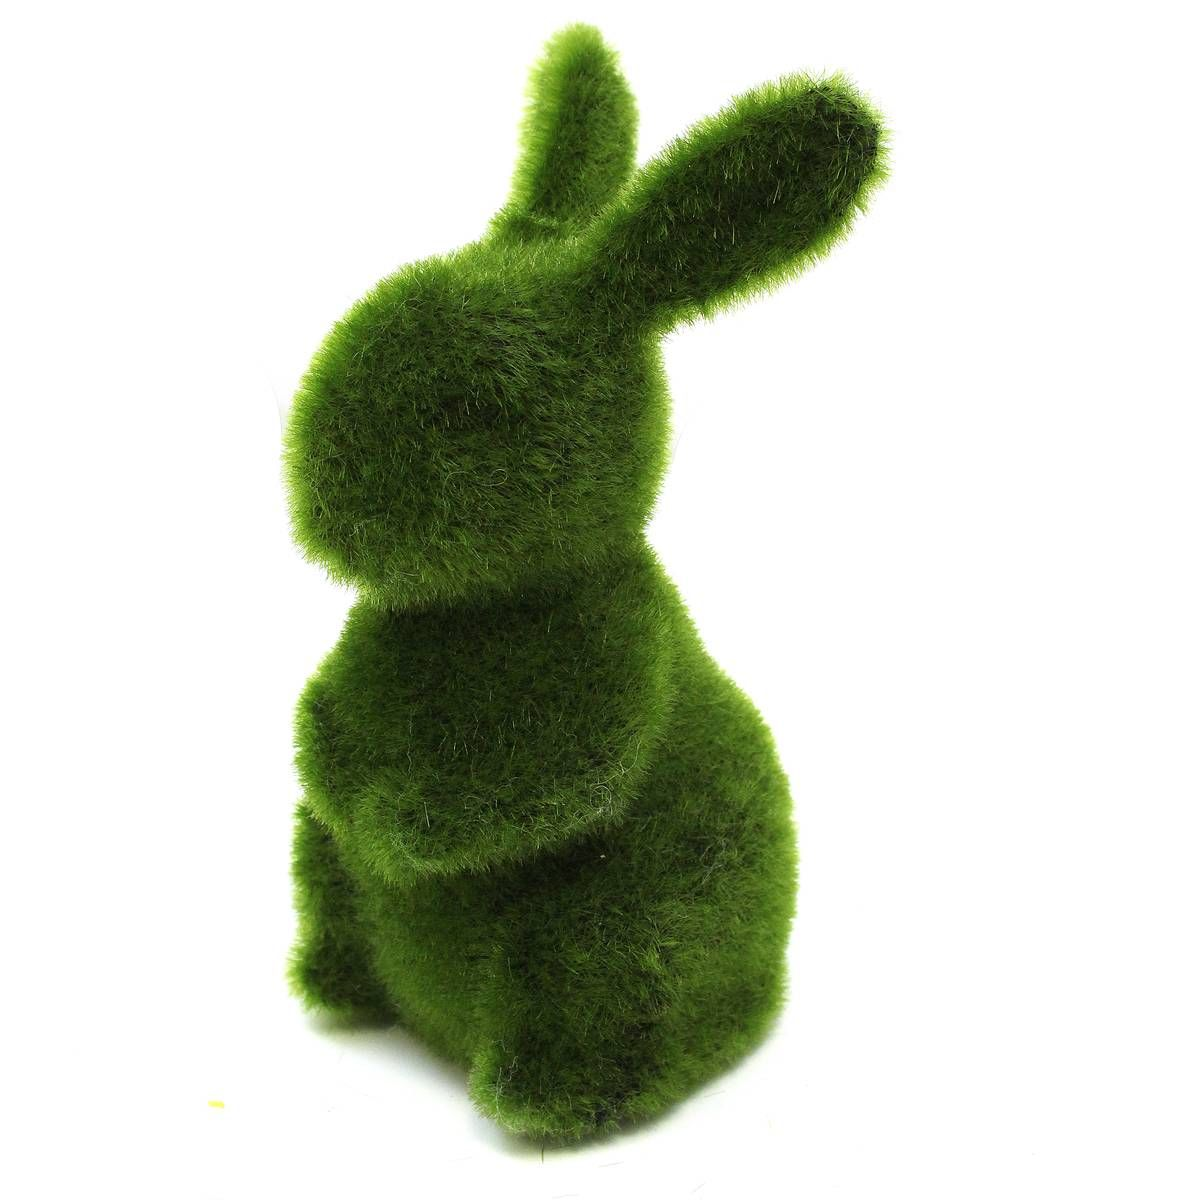 Faux Grass Bunny 17 Cm Hobbycraft Siobhan S Wish List Easter